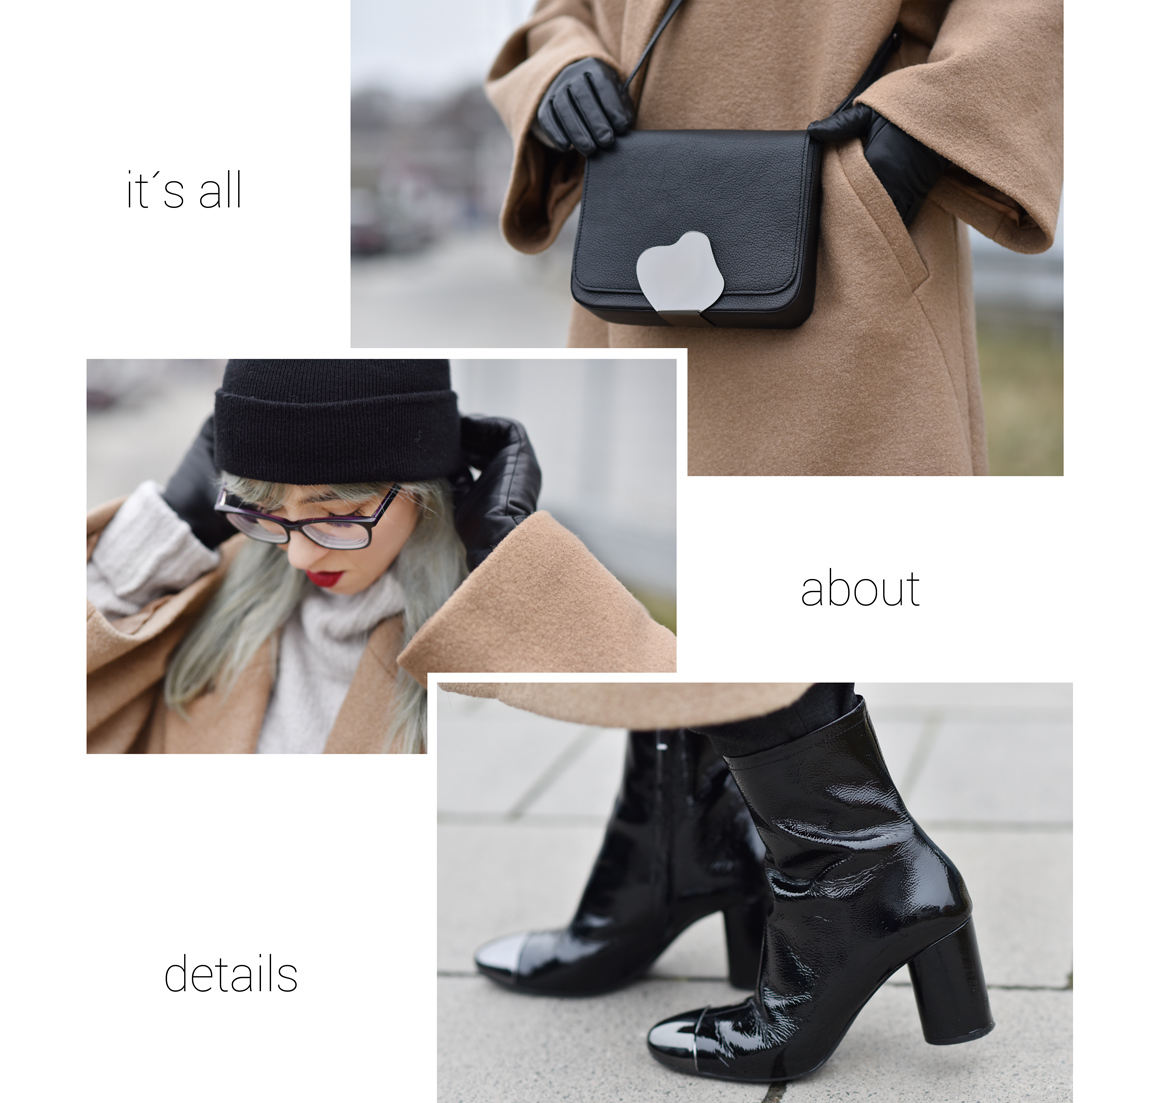 camel, mantel, fashionblogger, modeblogger, muenchen, outfit, winter, oversized, hm, coat, streetstyle, outfit, lackleder, stiefeletten